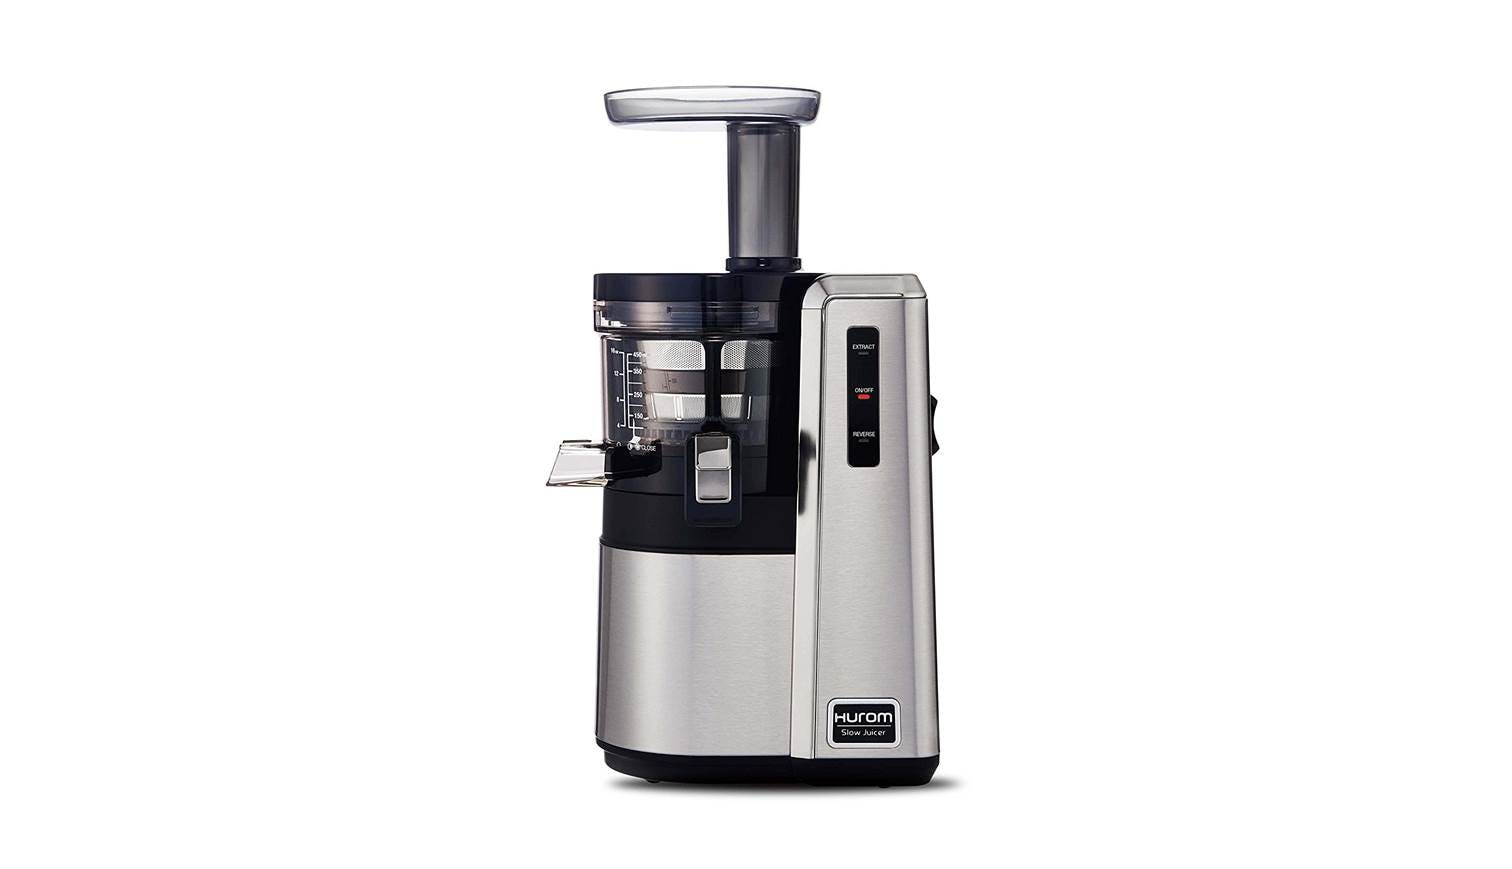 Hurom Slow Juicer Dimensions : Hurom HZ2500S Slow Juicer Harvey Norman Singapore